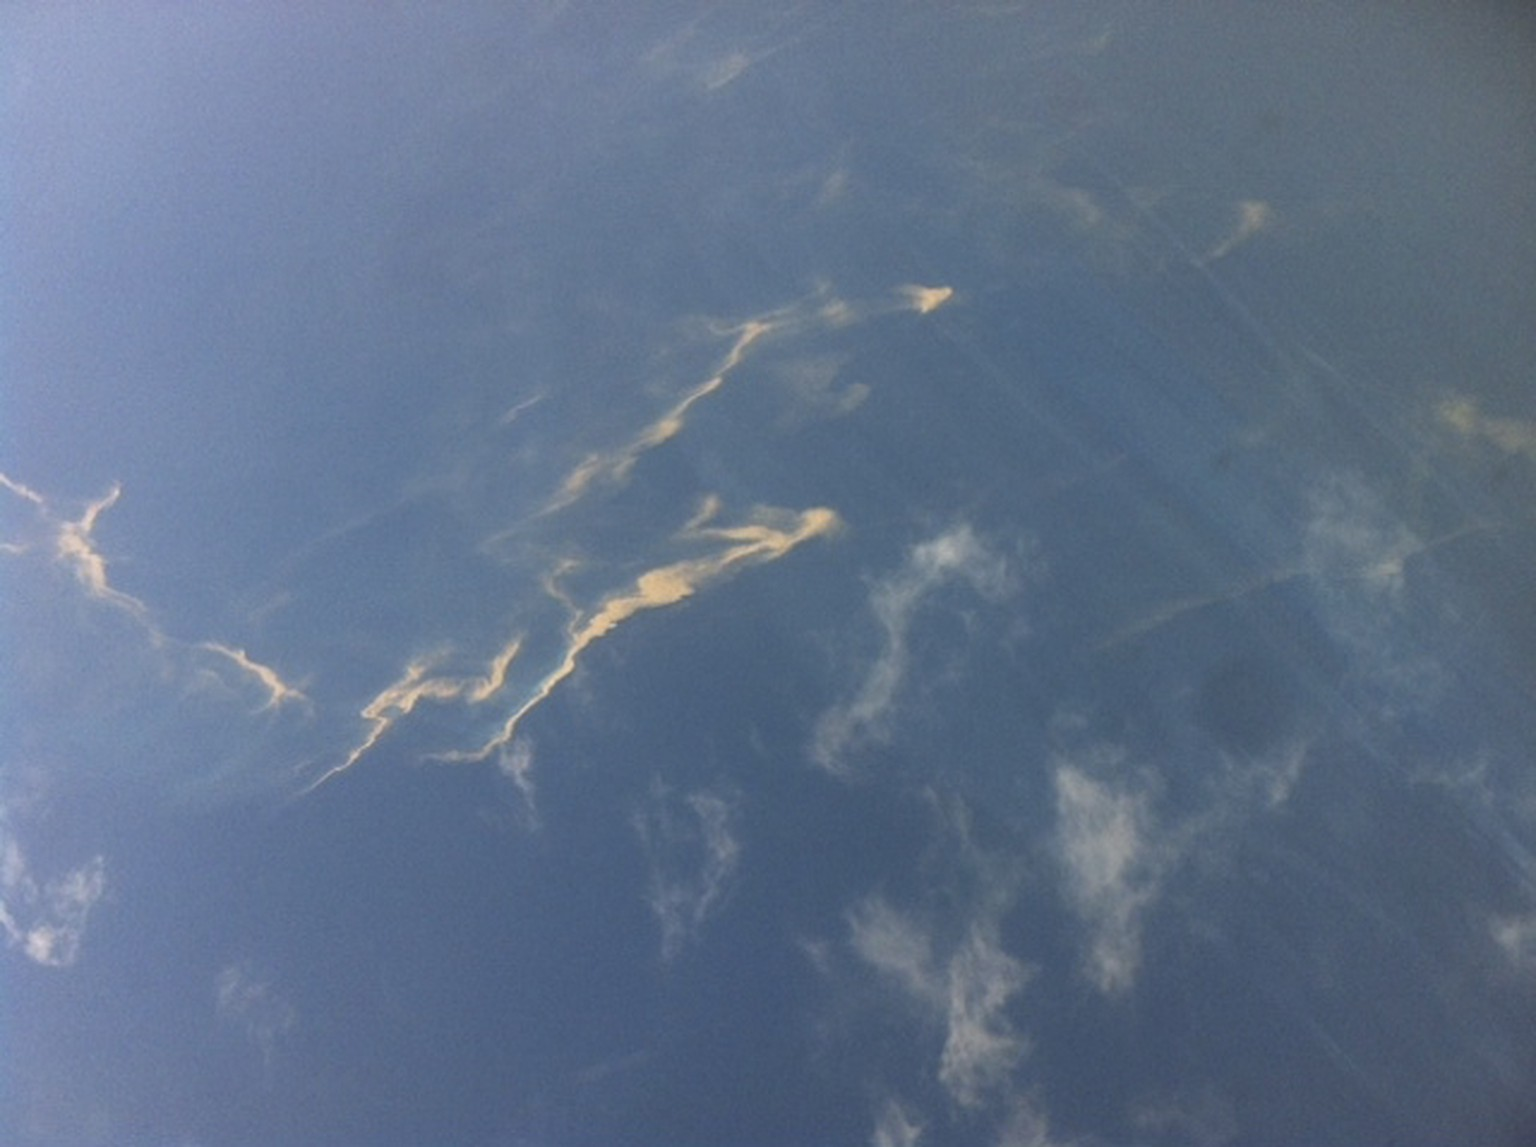 An aerial view of an oil spill is seen from a Vietnamese Air Force aircraft in the search area for a missing Malaysia Airlines plane, 250 km from Vietnam and 190 km from Malaysia, in this handout photo from Thanh Nien Newpaper taken on March 8, 2014. The Malaysia Airlines flight carrying 227 passengers and 12 crew went missing off the Vietnamese coast on Saturday as it flew from Kuala Lumpur to Beijing and was presumed to have crashed. There were no reports of bad weather and no sign why the Boeing 777-200ER, powered by Rolls-Royce Trent engines, would have vanished from radar screens about an hour after take-off. Mandatory Credit REUTERS/Trung Hieu/Thanh Nien Newspaper (VIETNAM - Tags: DISASTER TRANSPORT TPX IMAGES OF THE DAY) ATTENTION EDITORS - NO SALES. NO ARCHIVES. FOR EDITORIAL USE ONLY. NOT FOR SALE FOR MARKETING OR ADVERTISING CAMPAIGNS. THIS IMAGE HAS BEEN SUPPLIED BY A THIRD PARTY. IT IS DISTRIBUTED, EXACTLY AS RECEIVED BY REUTERS, AS A SERVICE TO CLIENTS. MANDATORY CREDIT. VIETNAM OUT. NO COMMERCIAL OR EDITORIAL SALES IN VIETNAM